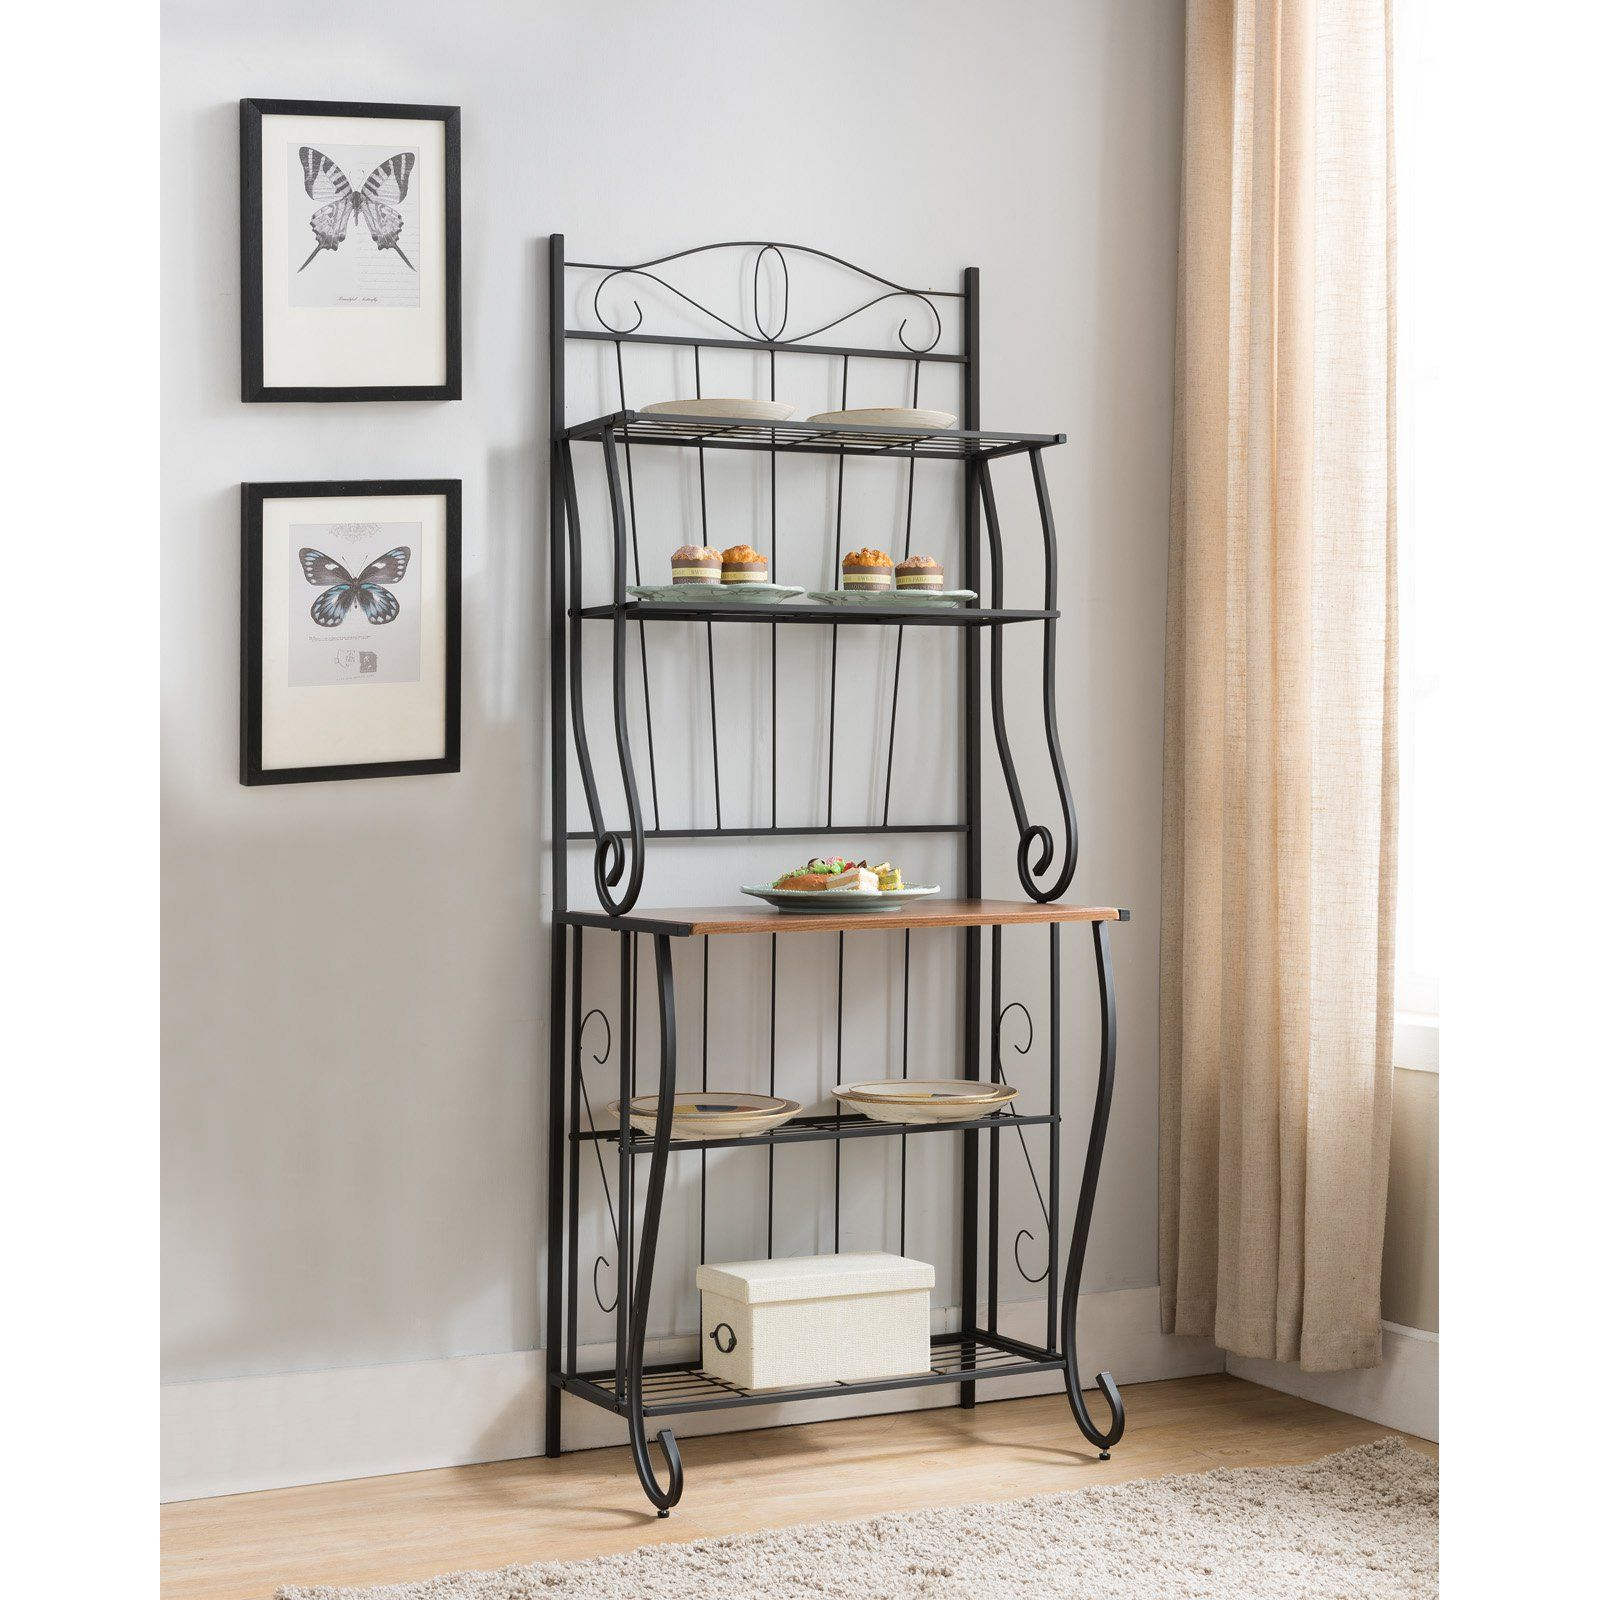 K B Furniture K3025 Metal Kitchen Bakers Rack Bakers Rack Glass